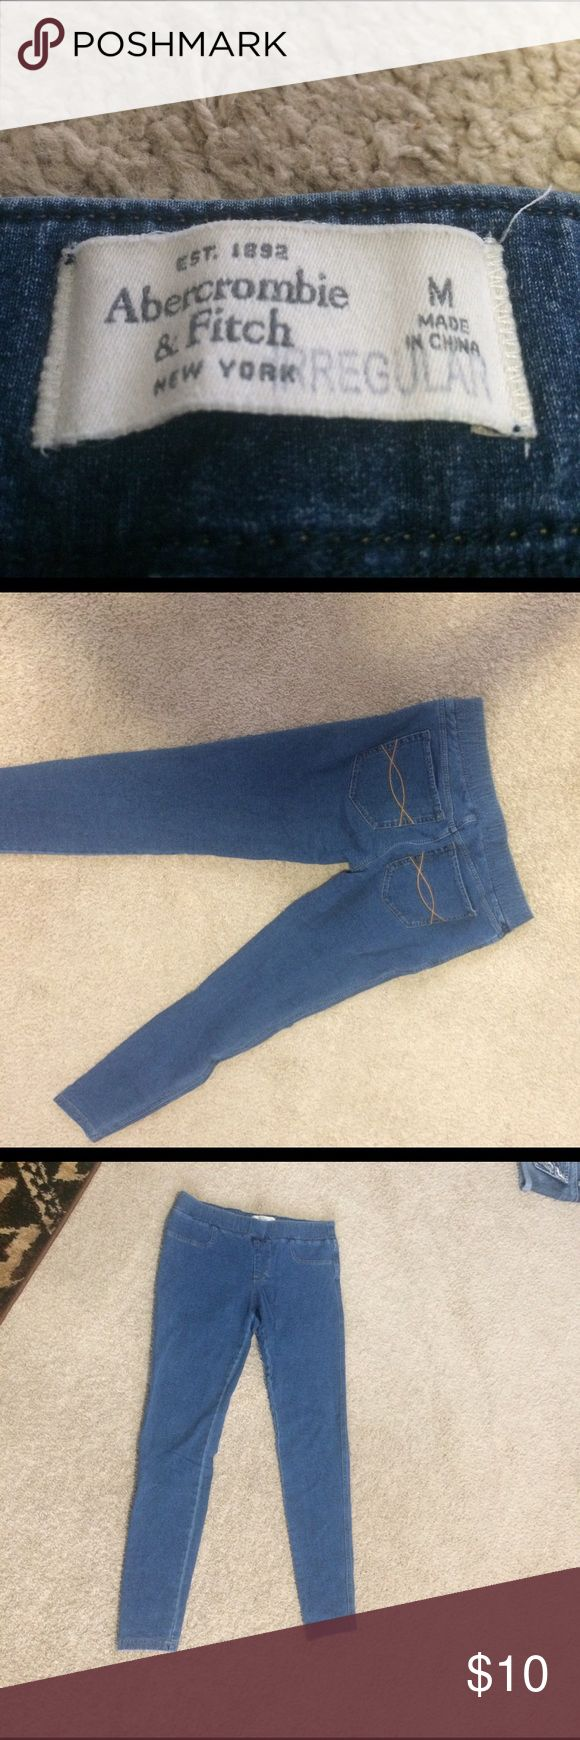 Abercrombie and Fitch leggings Abercrombie and Fitch jeans 👖 style leggings Abercrombie & Fitch Pants Leggings